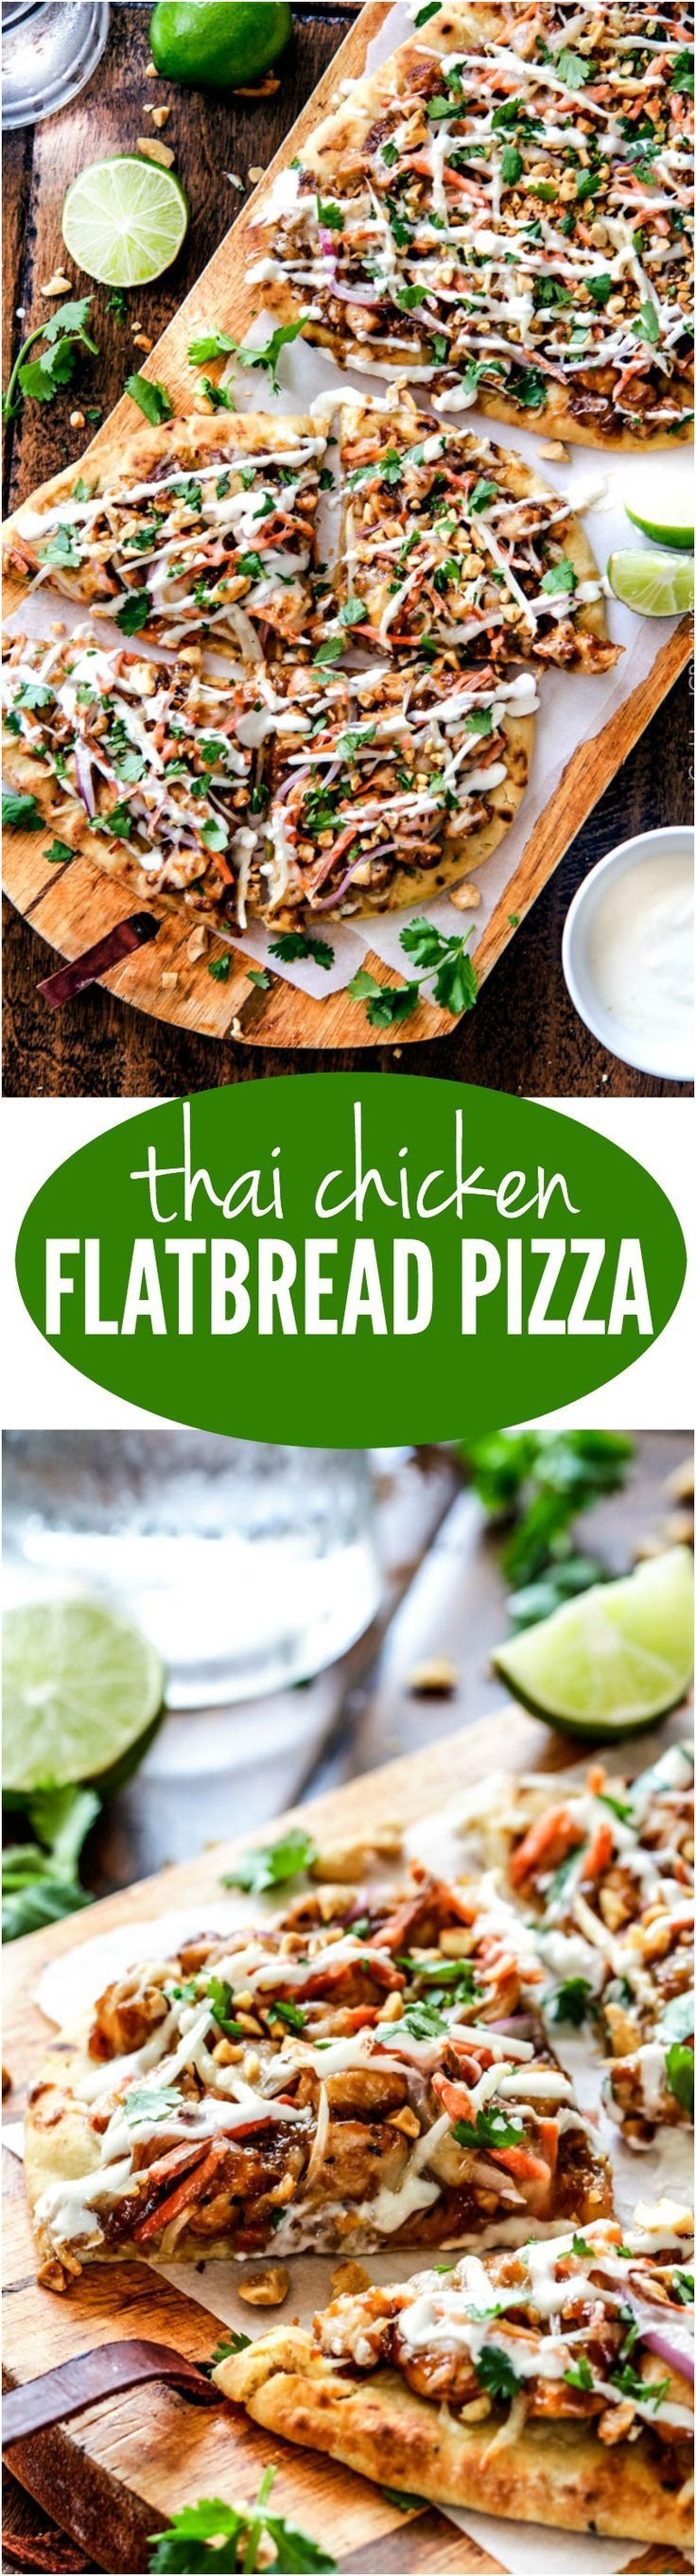 Thai Chicken Flatbread Pizza smothered in easy tangy peanut sauce, tender chicken, carrots, sprouts, mozzarella cheese and the option of Coconut Crema drizzle - an amazing flavor bursting quick dinner the whole family will love!